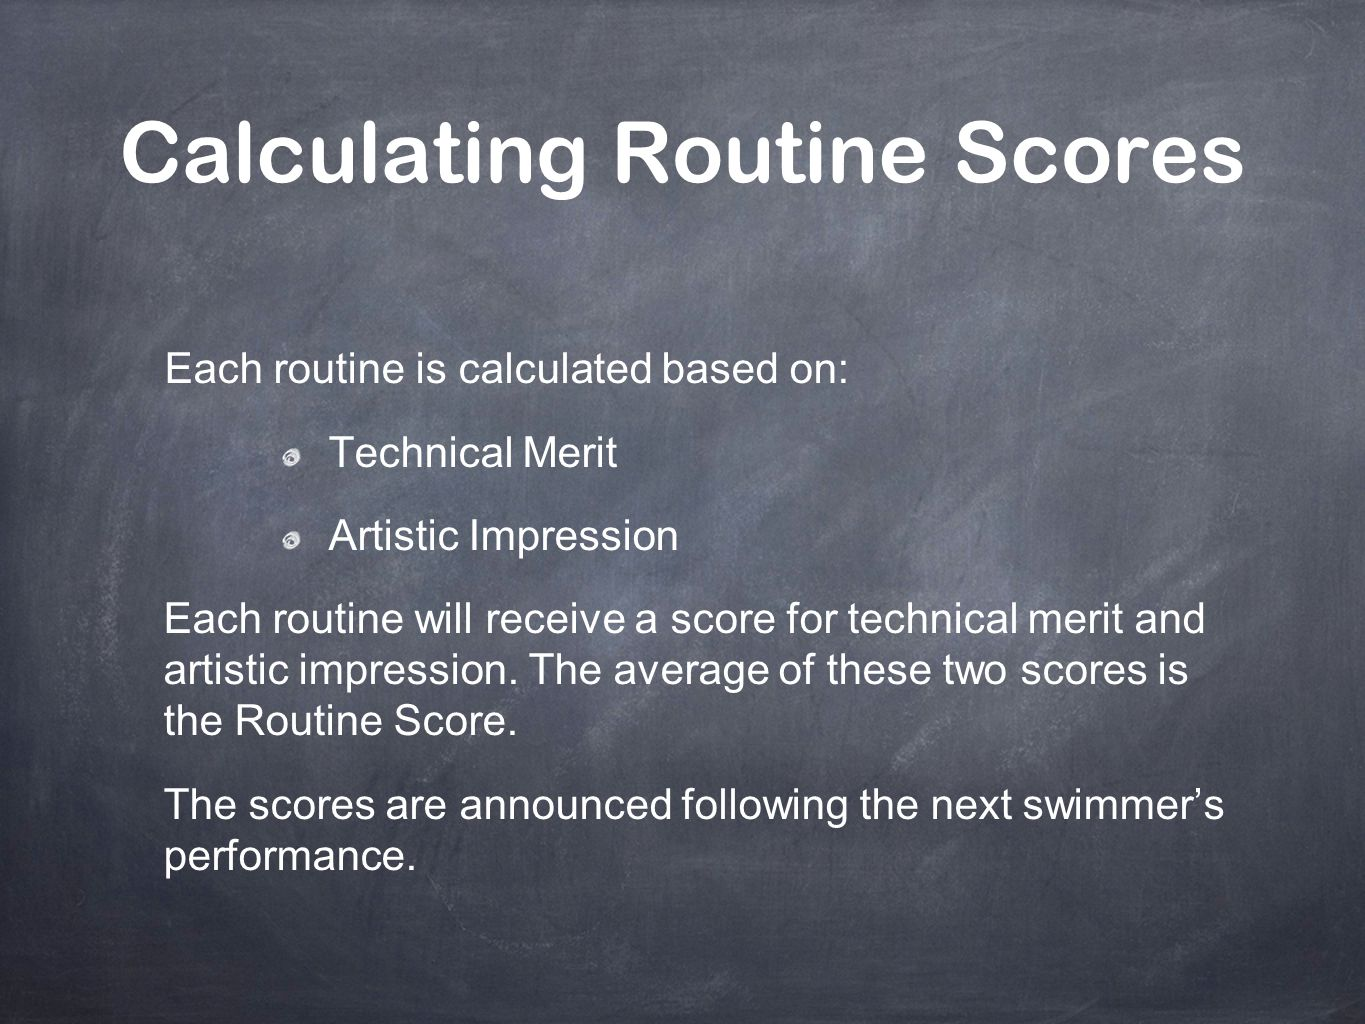 Calculating Routine Scores